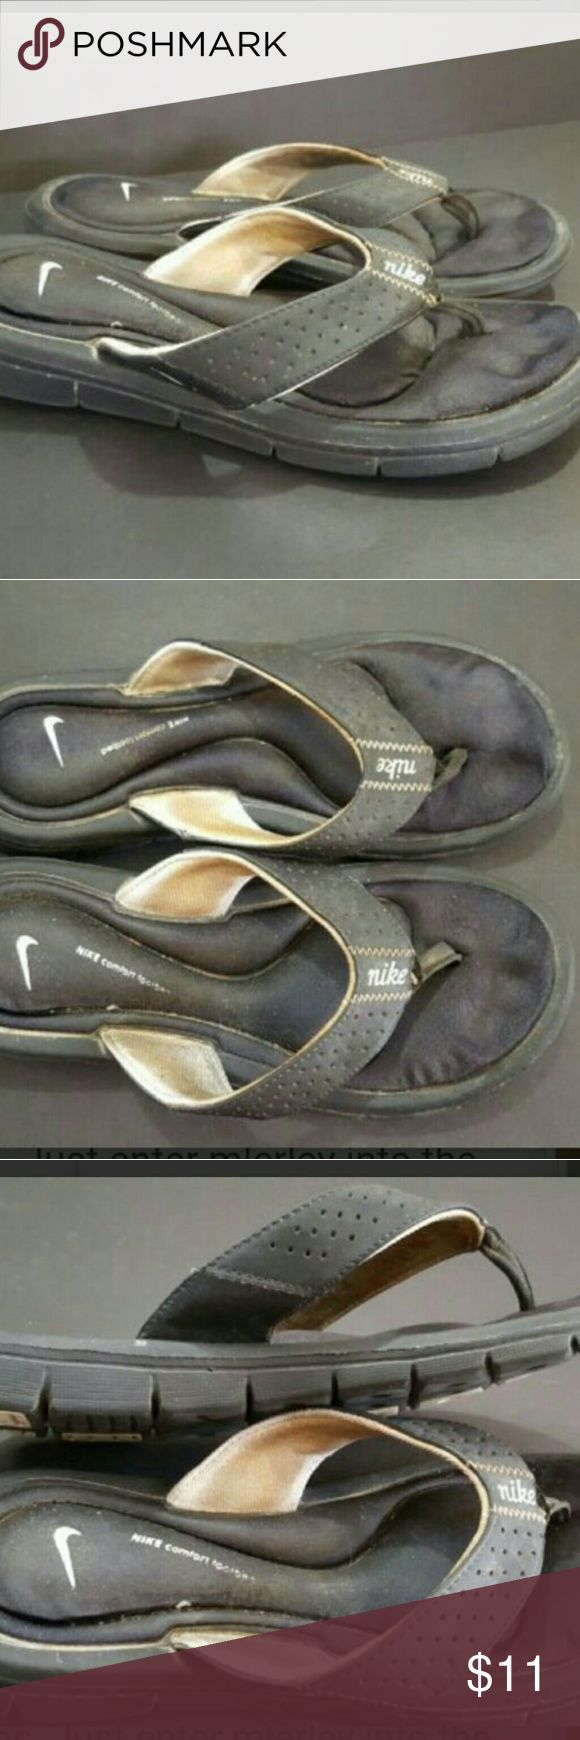 NIKE WOMEN'S SIZE 6 FLIP FLOP SANDALS GUC NIKE WOMEN'S SIZE 6 FLIP FLOP SANDALS GUC  These are a good condition pair of flip flops from NIKE! They are a women's size 6. With a cleaning these could be GREAT condition!? Nike Shoes Sandals